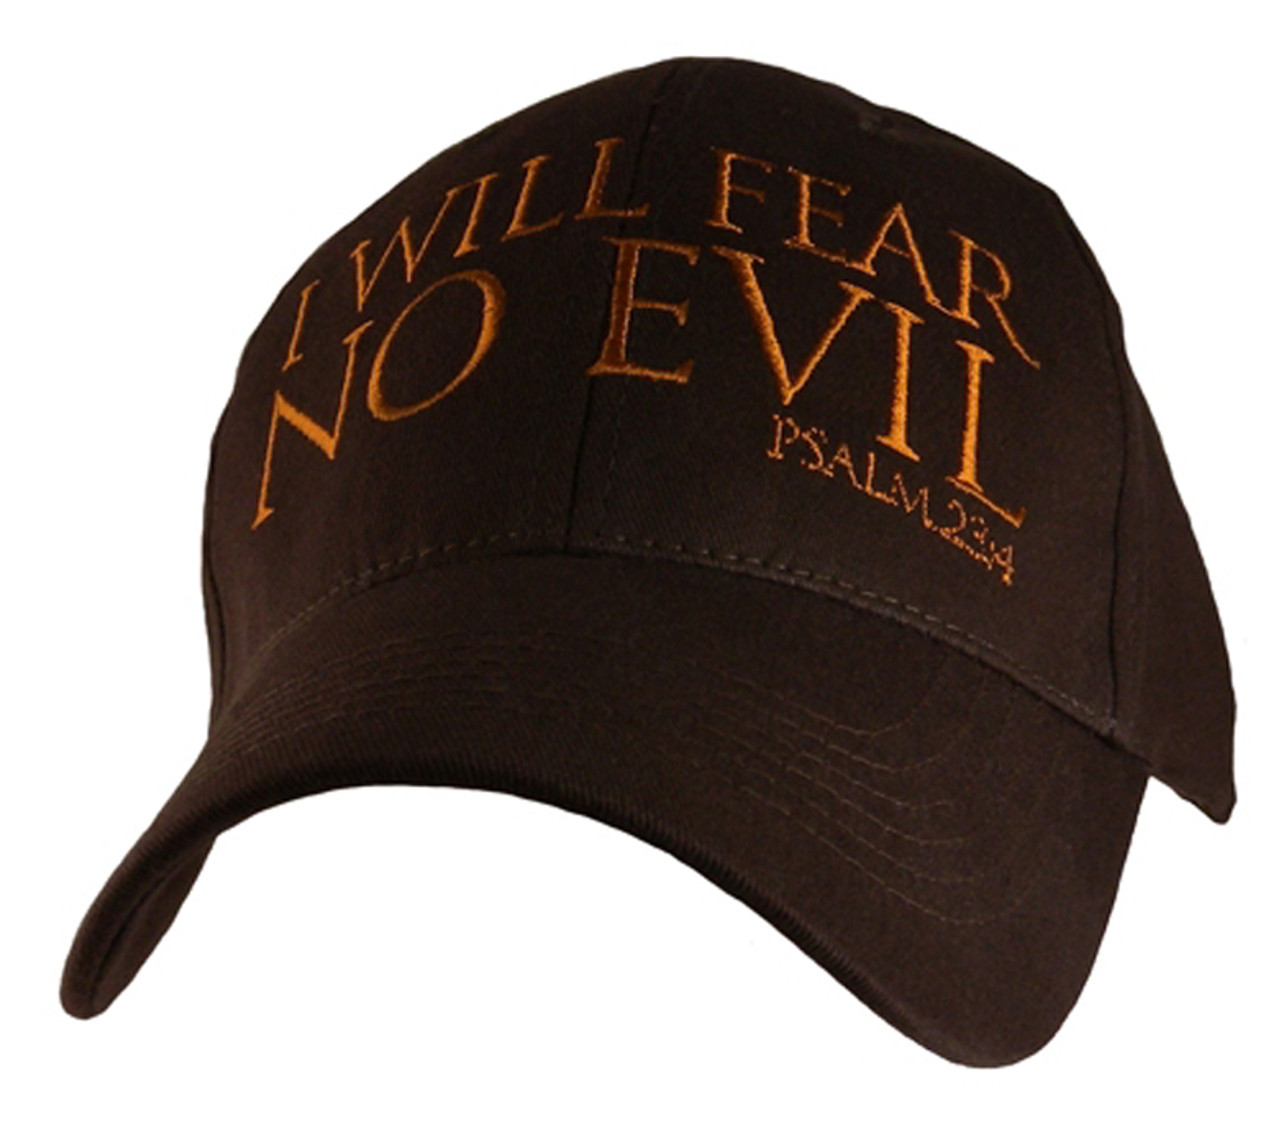 8b90ed3aedc I Will Fear No Evil For Thou Art With Me Psalm 23 4 Christian Hat Baseball  Cap